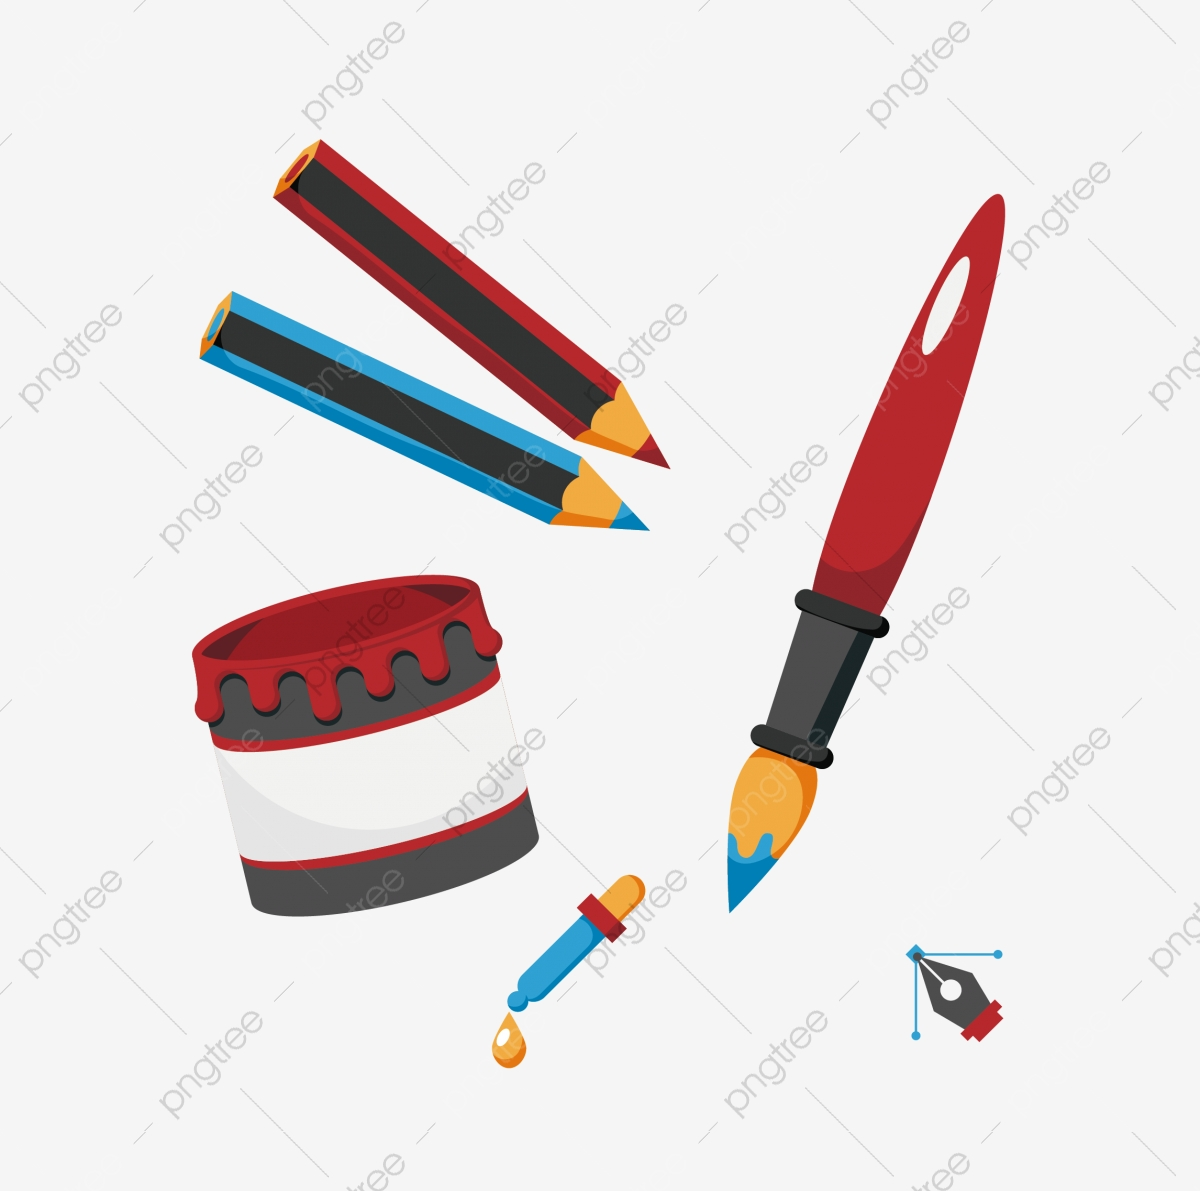 Cartoon Cartoon Pen Various Pens Ink Ink Straw Straw Tool Png And Vector With Transparent Background For Free Download